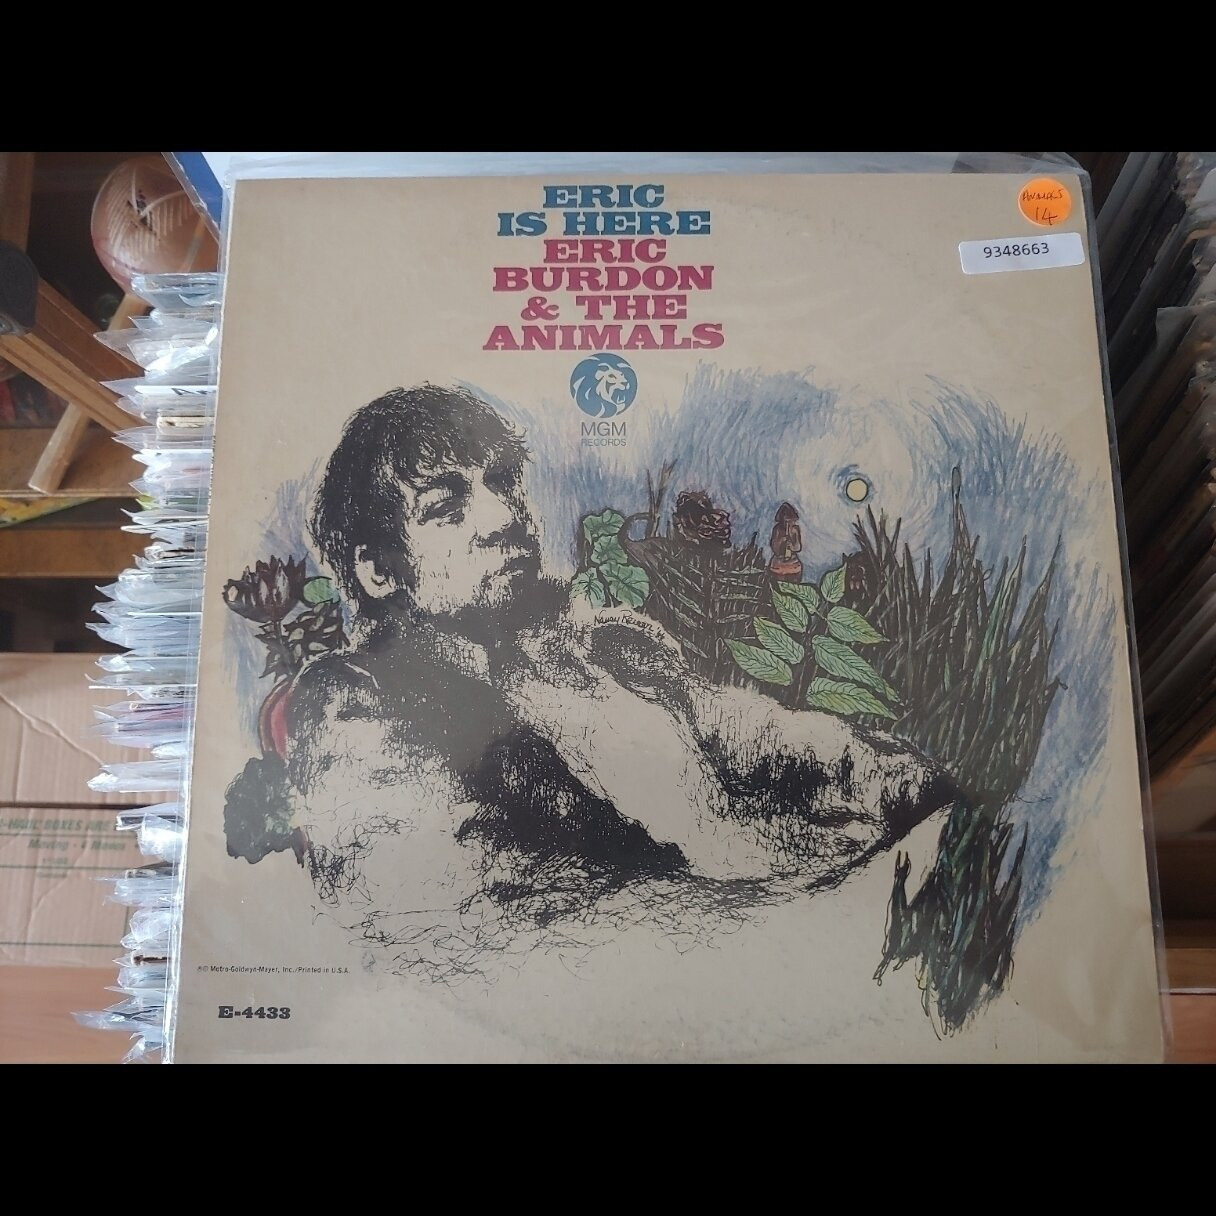 Animals, The Eric Burdon and the Animals Eric is here